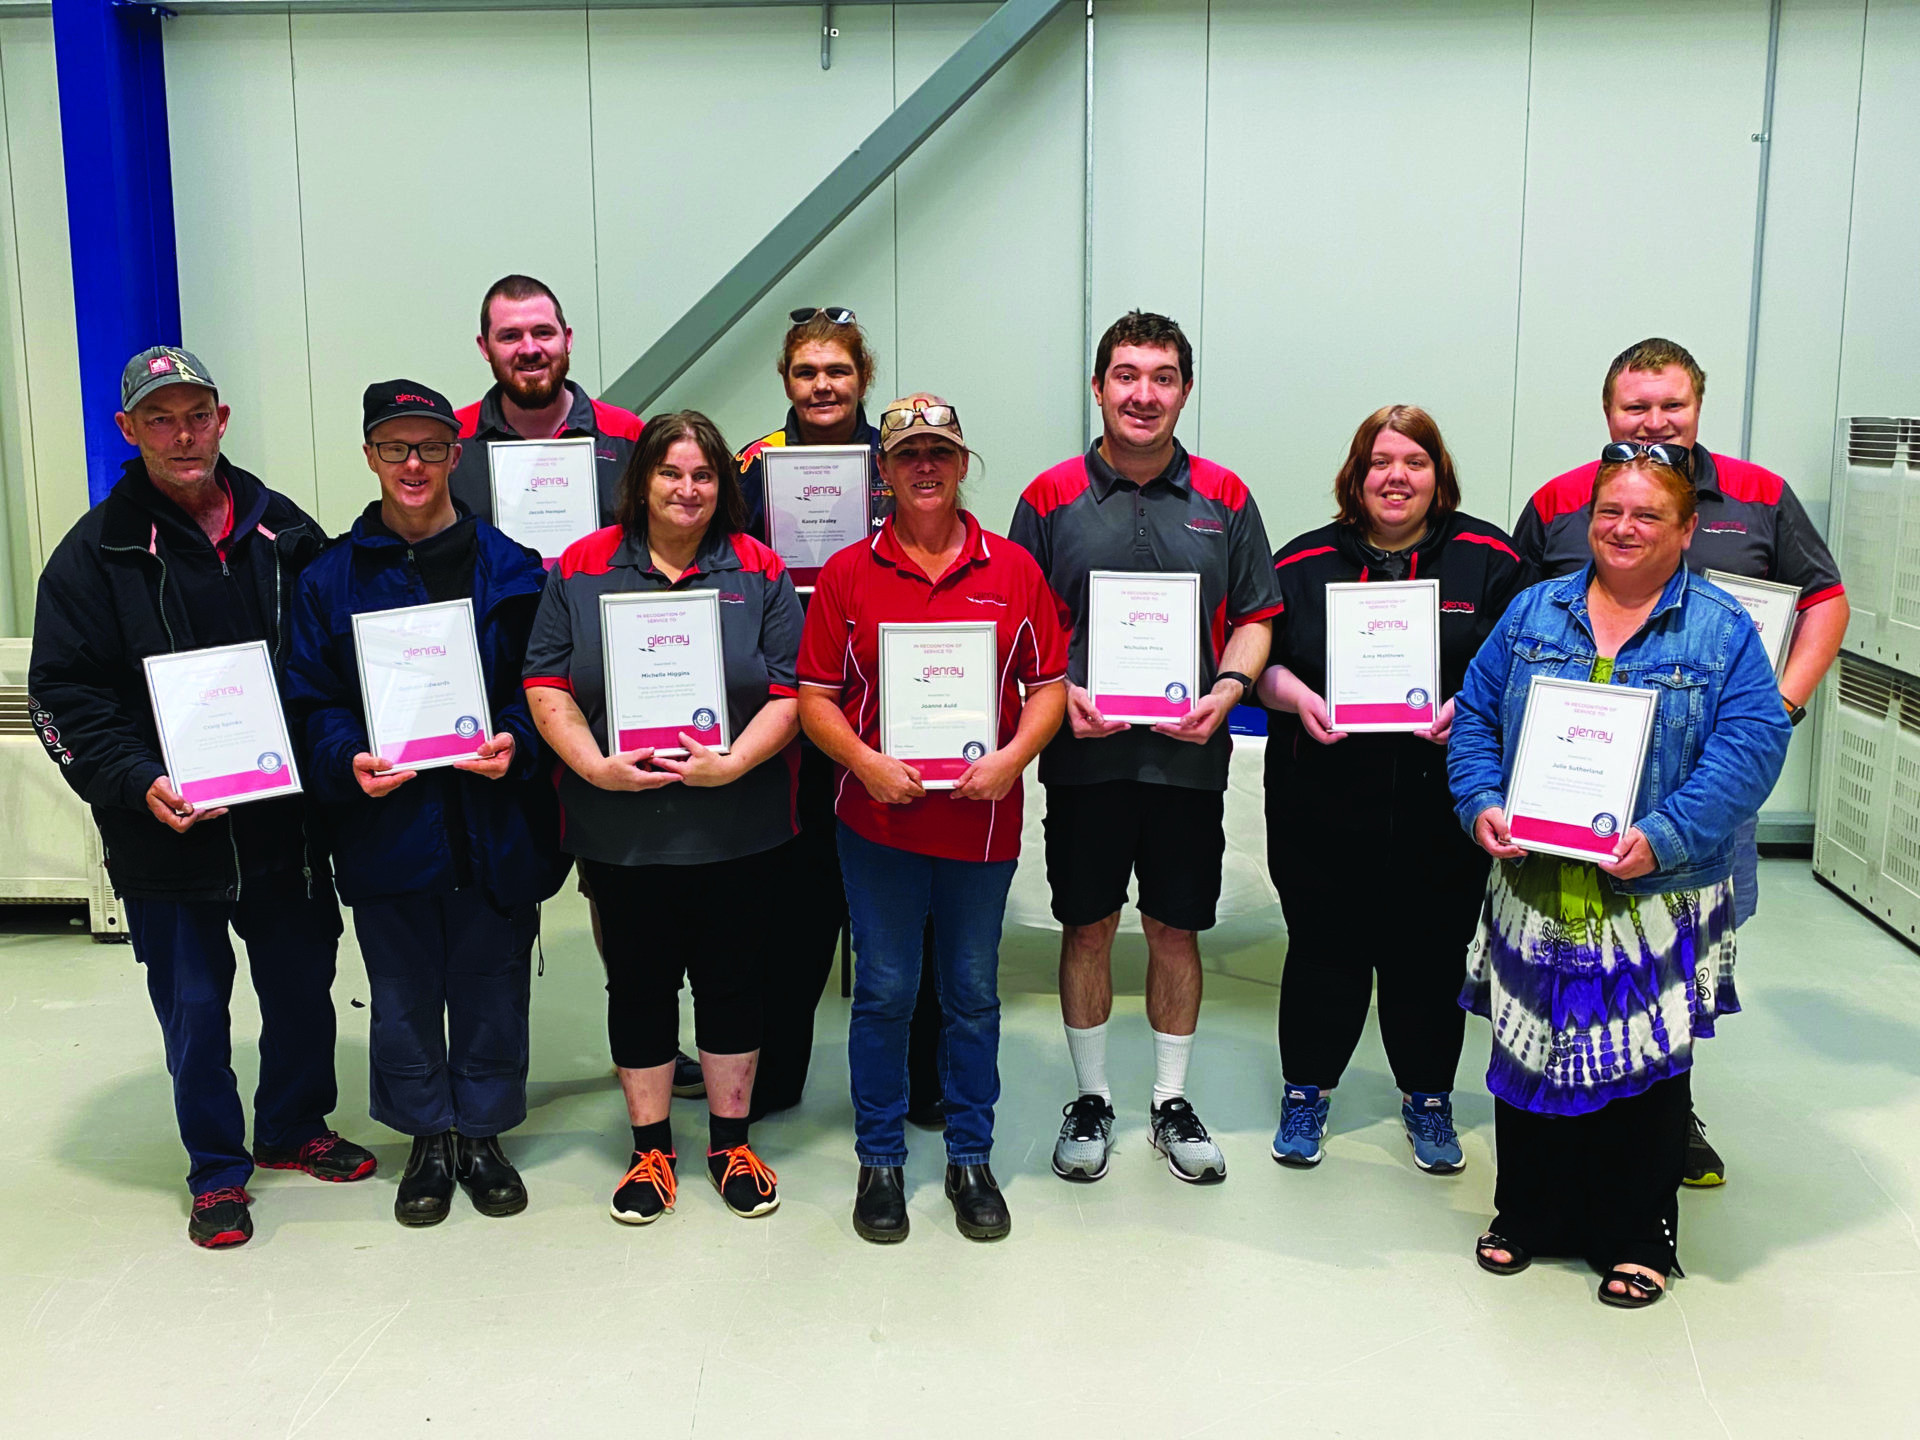 People with Recognition awards